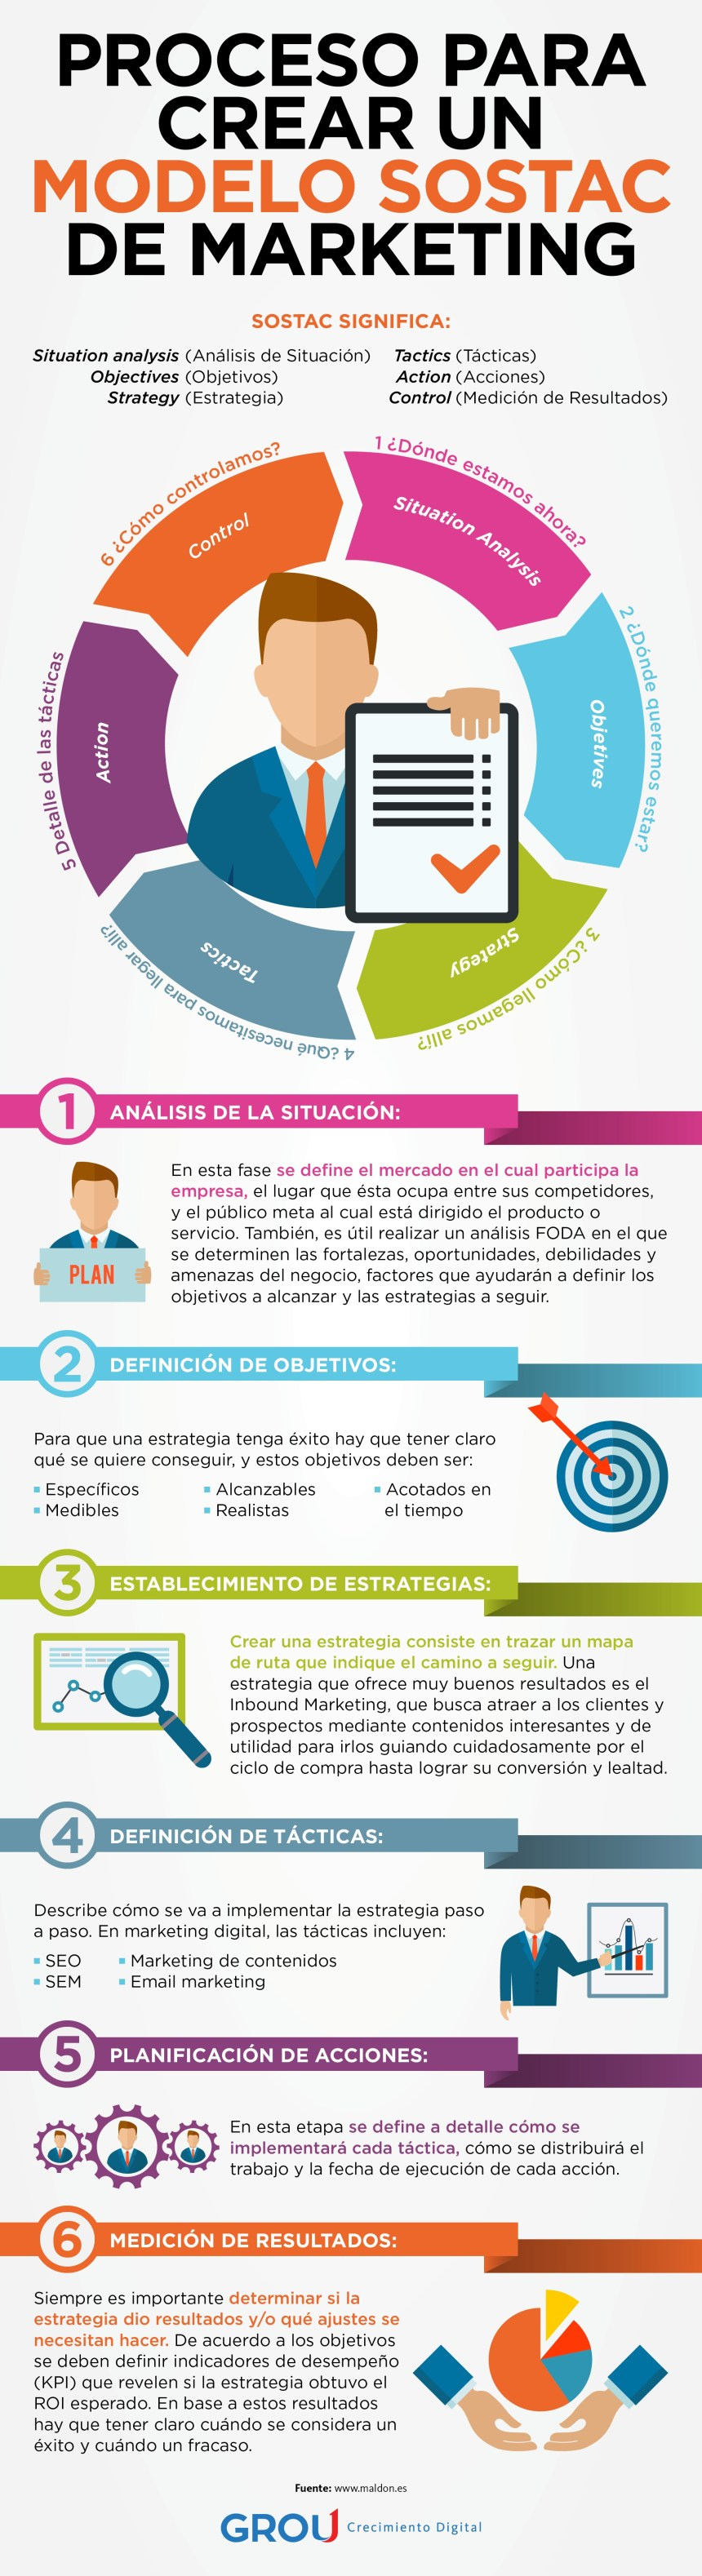 Proceso para crear un modelo SOSTAC de marketing